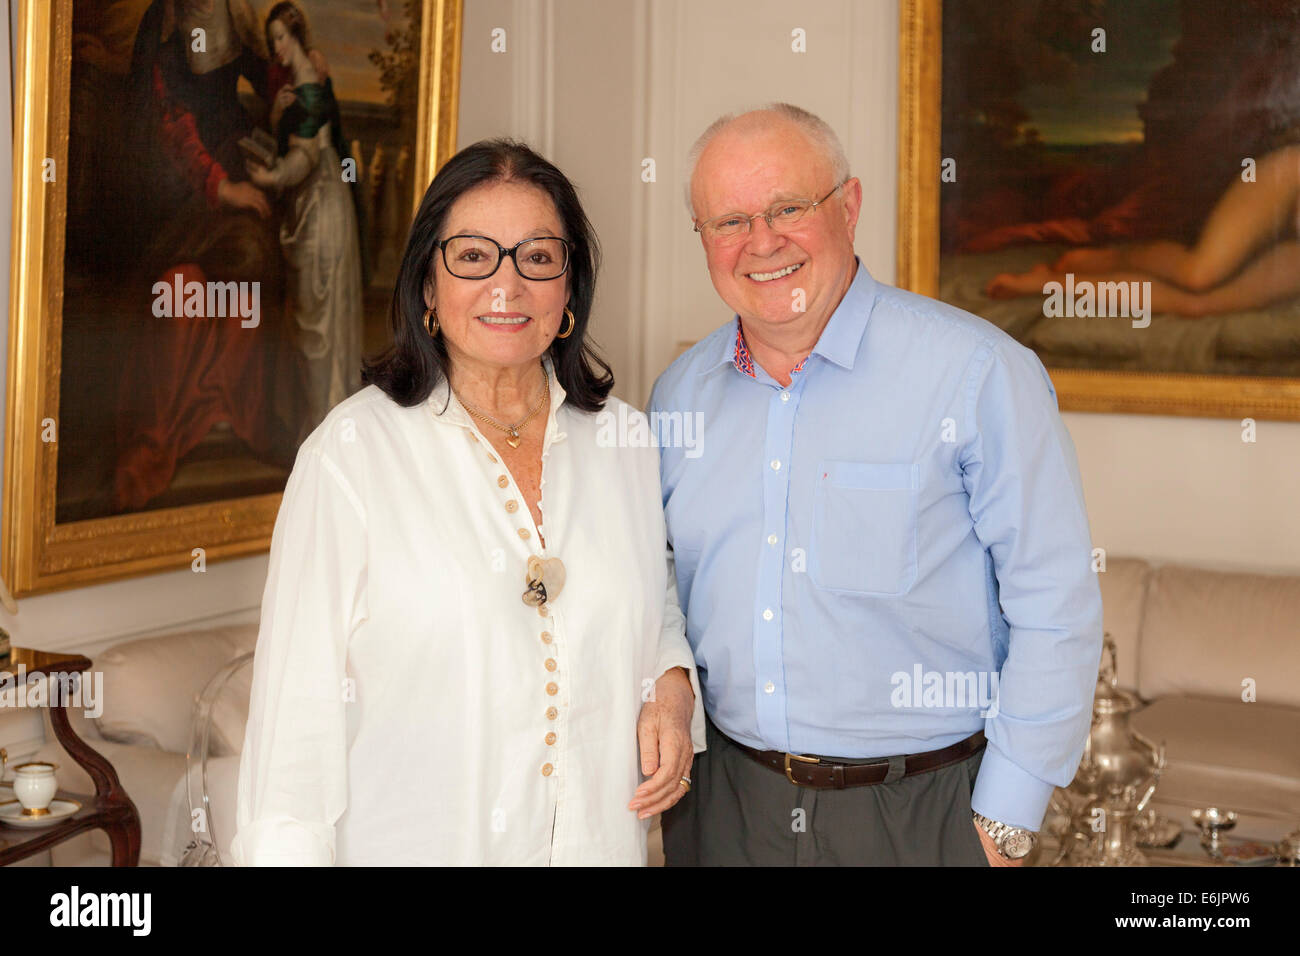 Greek singer NANA MOUSKOURI (left) at her home in Paris with her friend John Henshall (right) - Stock Image